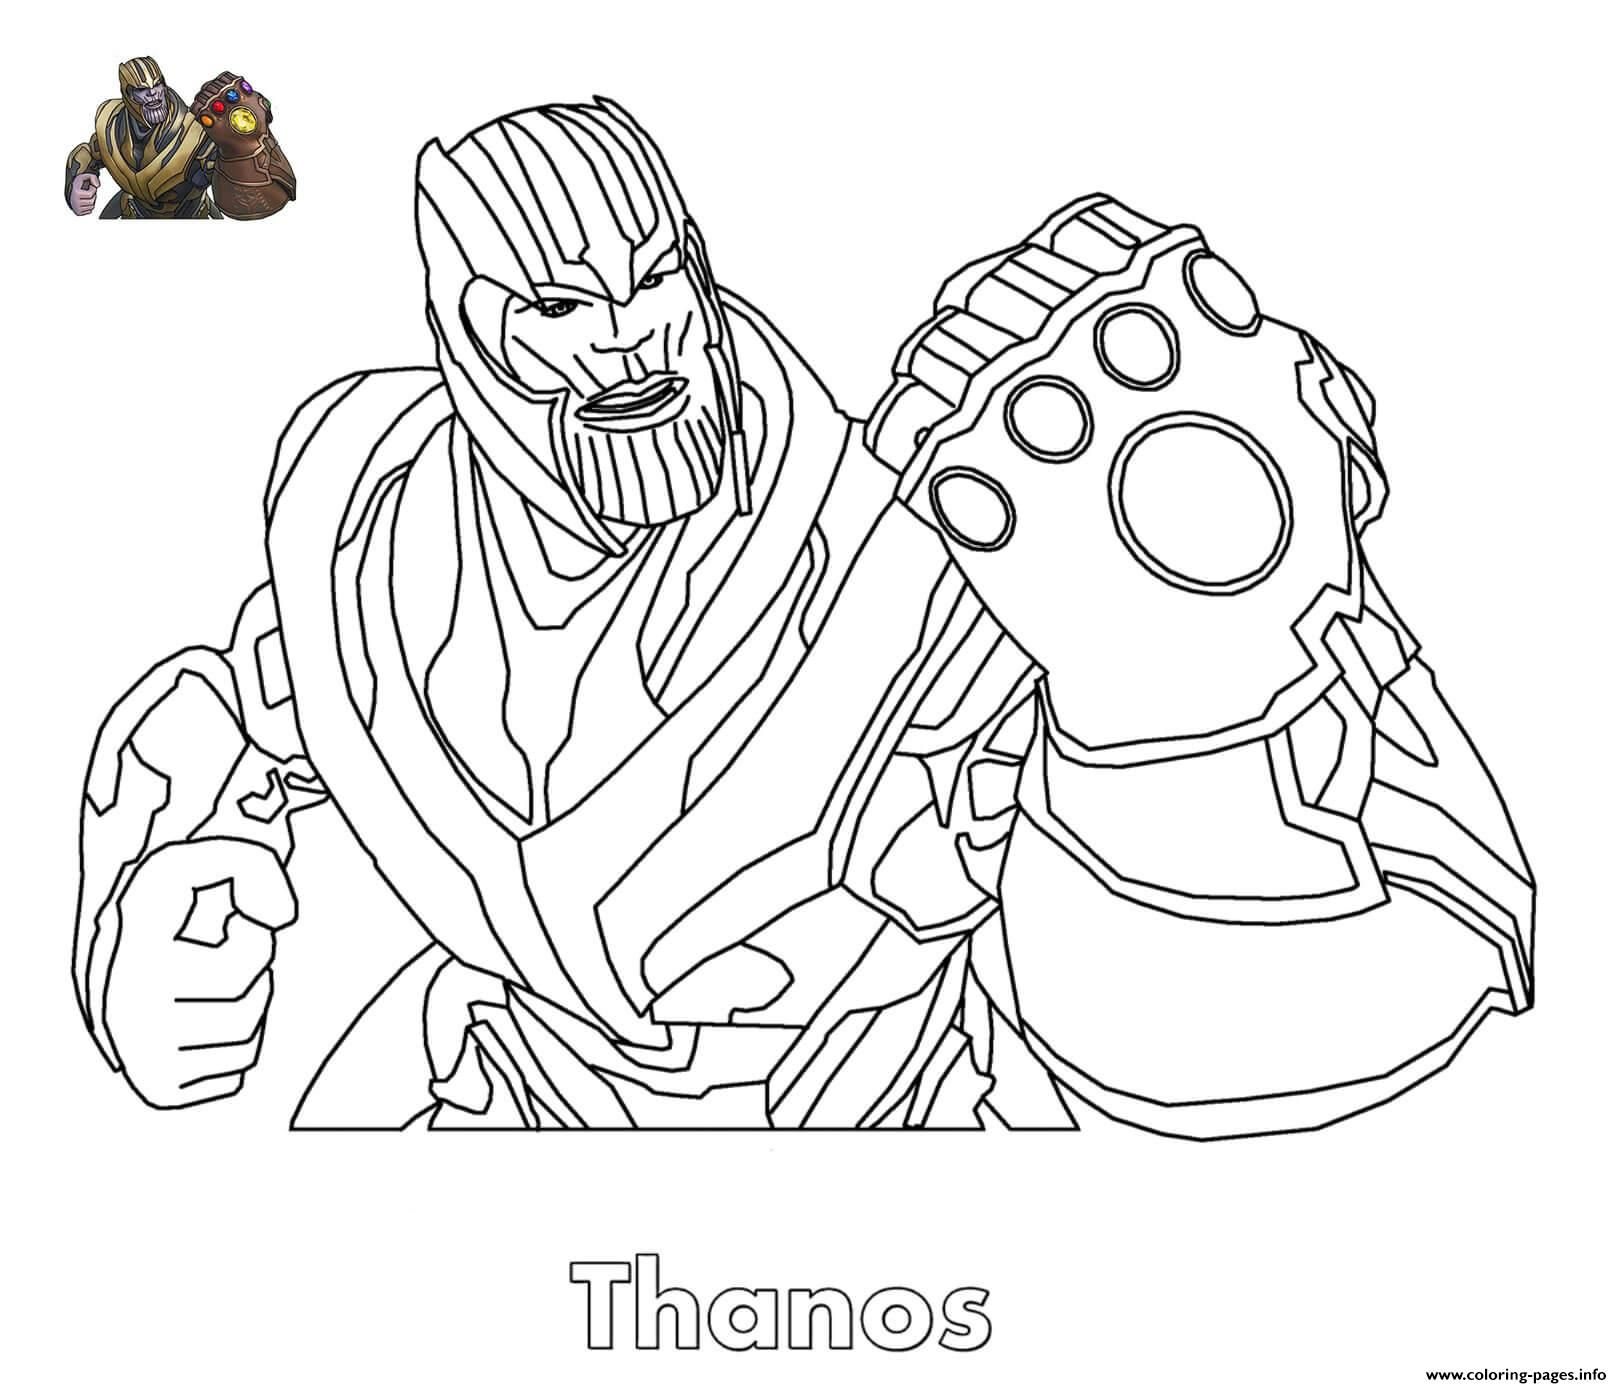 Superhero Thanos Coloring Pages: Print Thanos Fortnite Coloring Pages